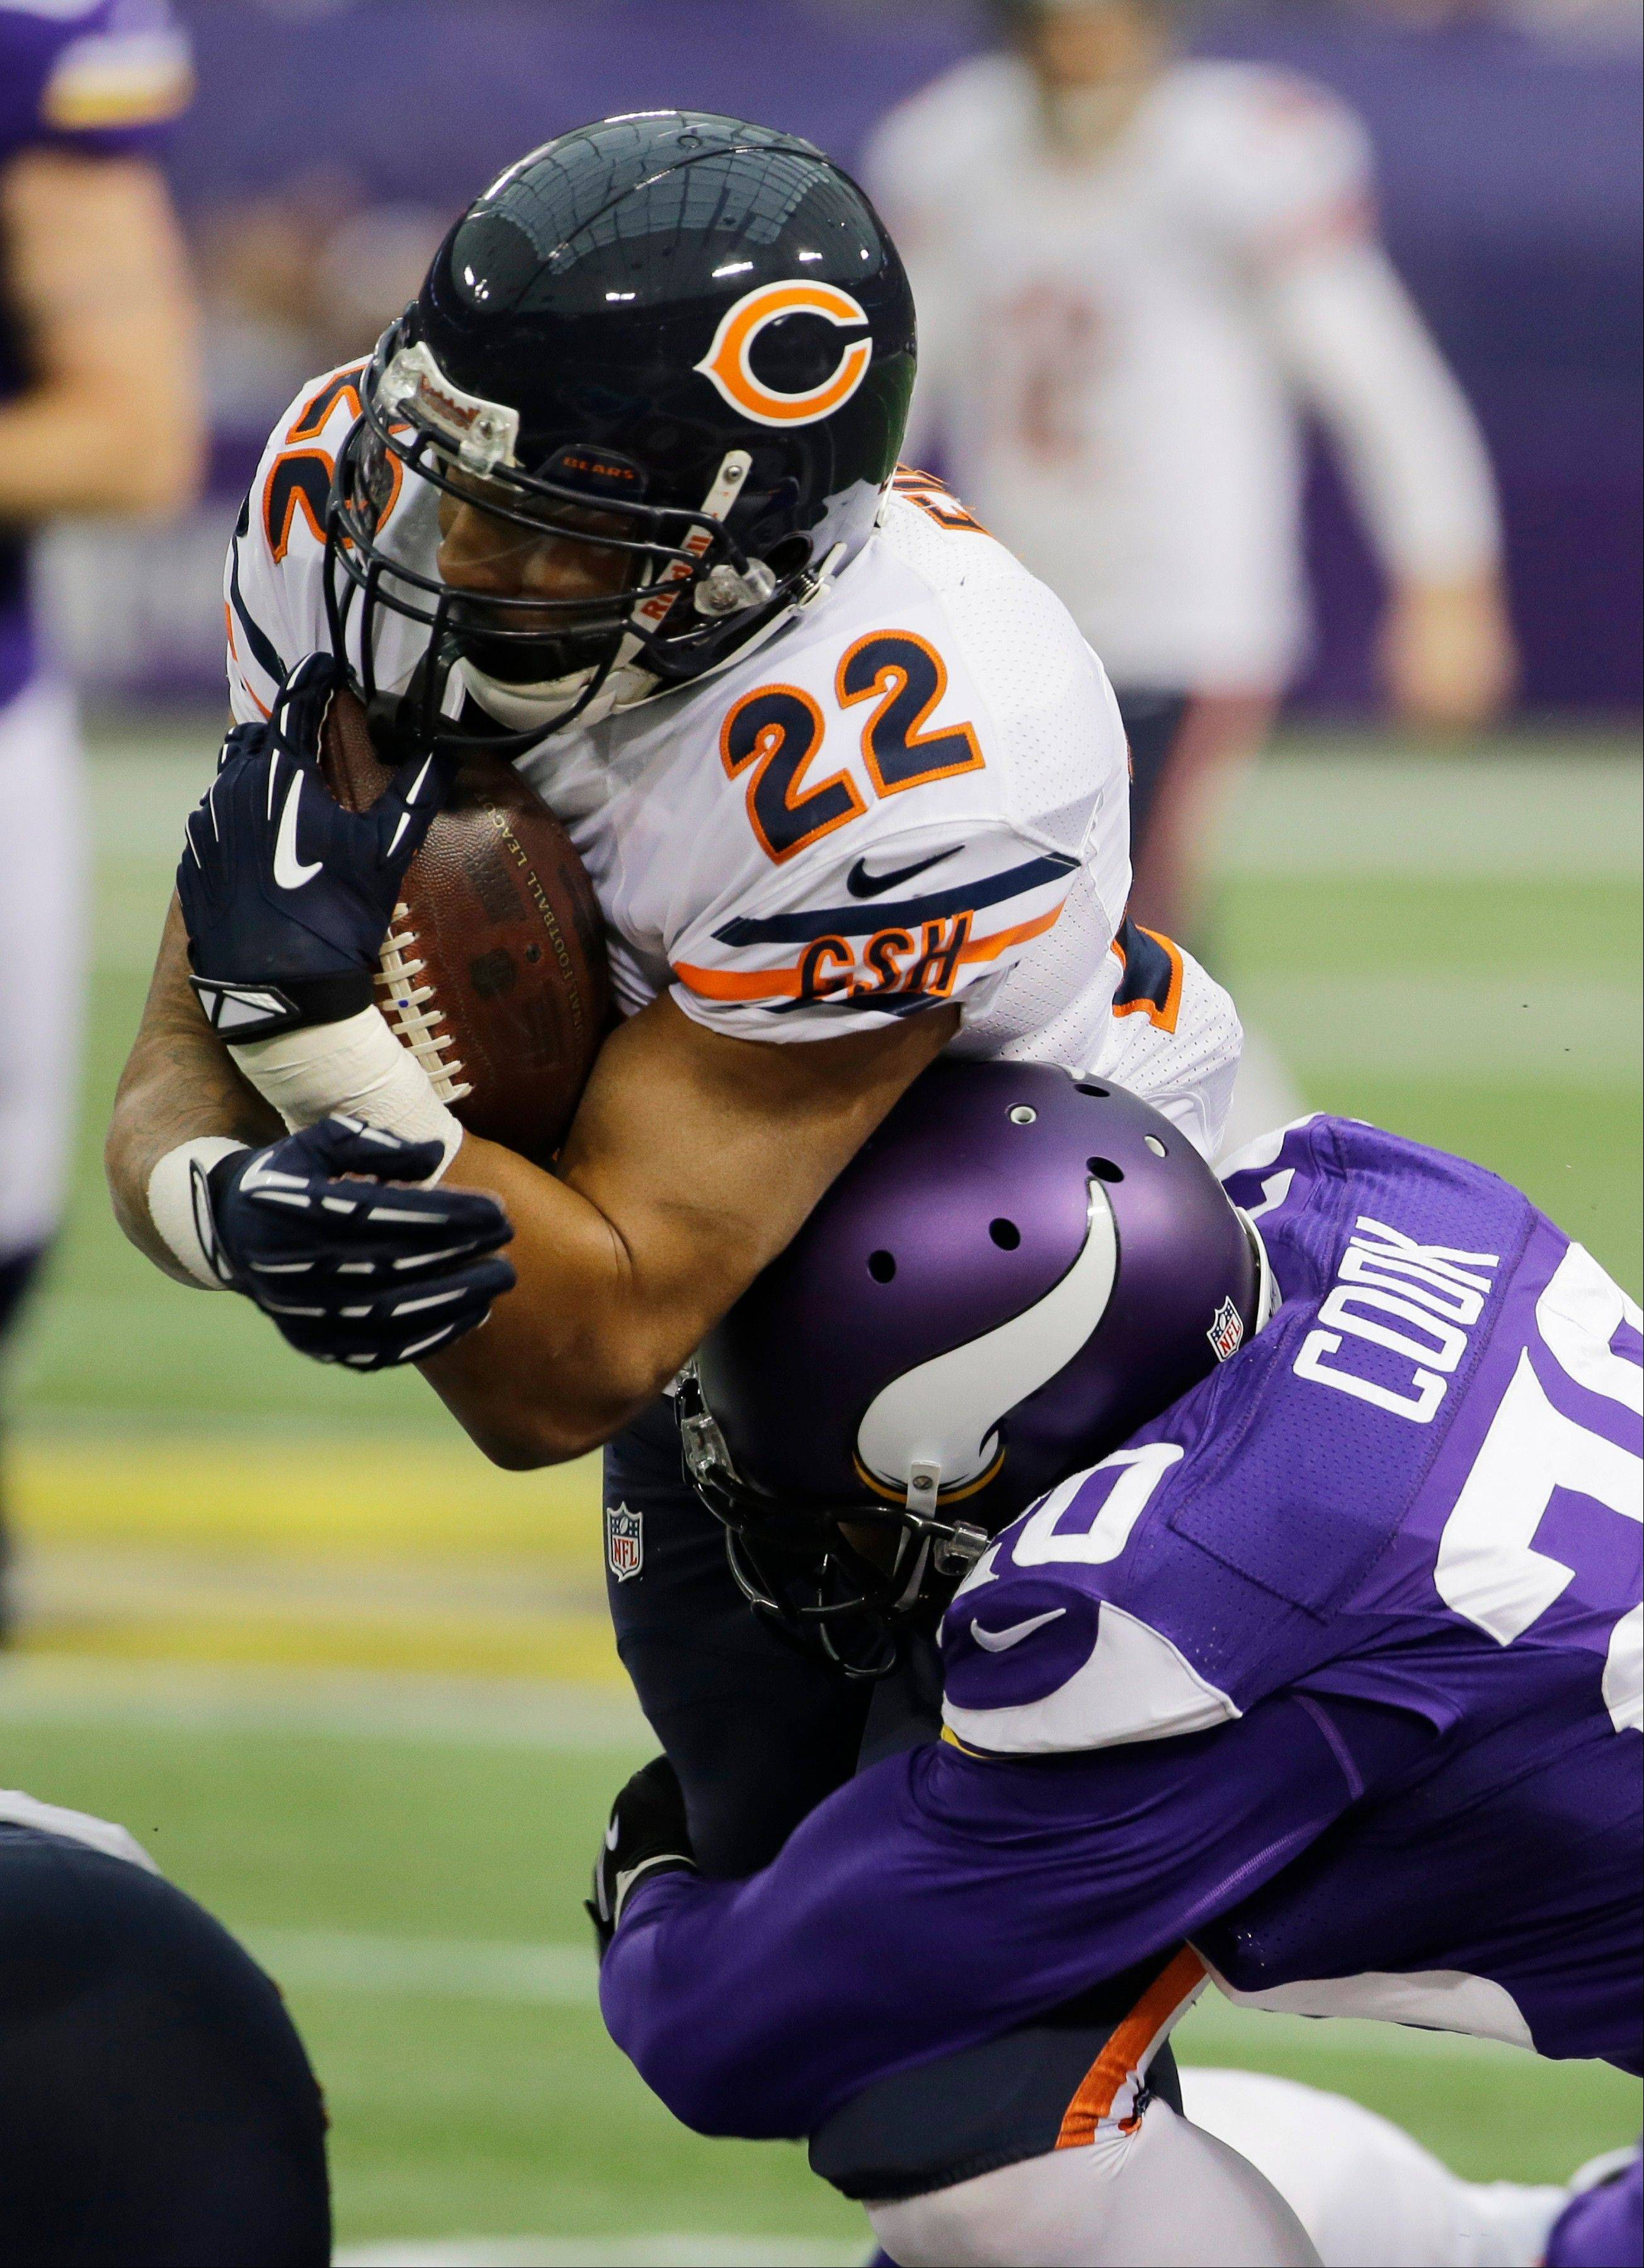 Chicago Bears running back Matt Forte (22) is tackled by Minnesota Vikings cornerback Chris Cook during the first half.